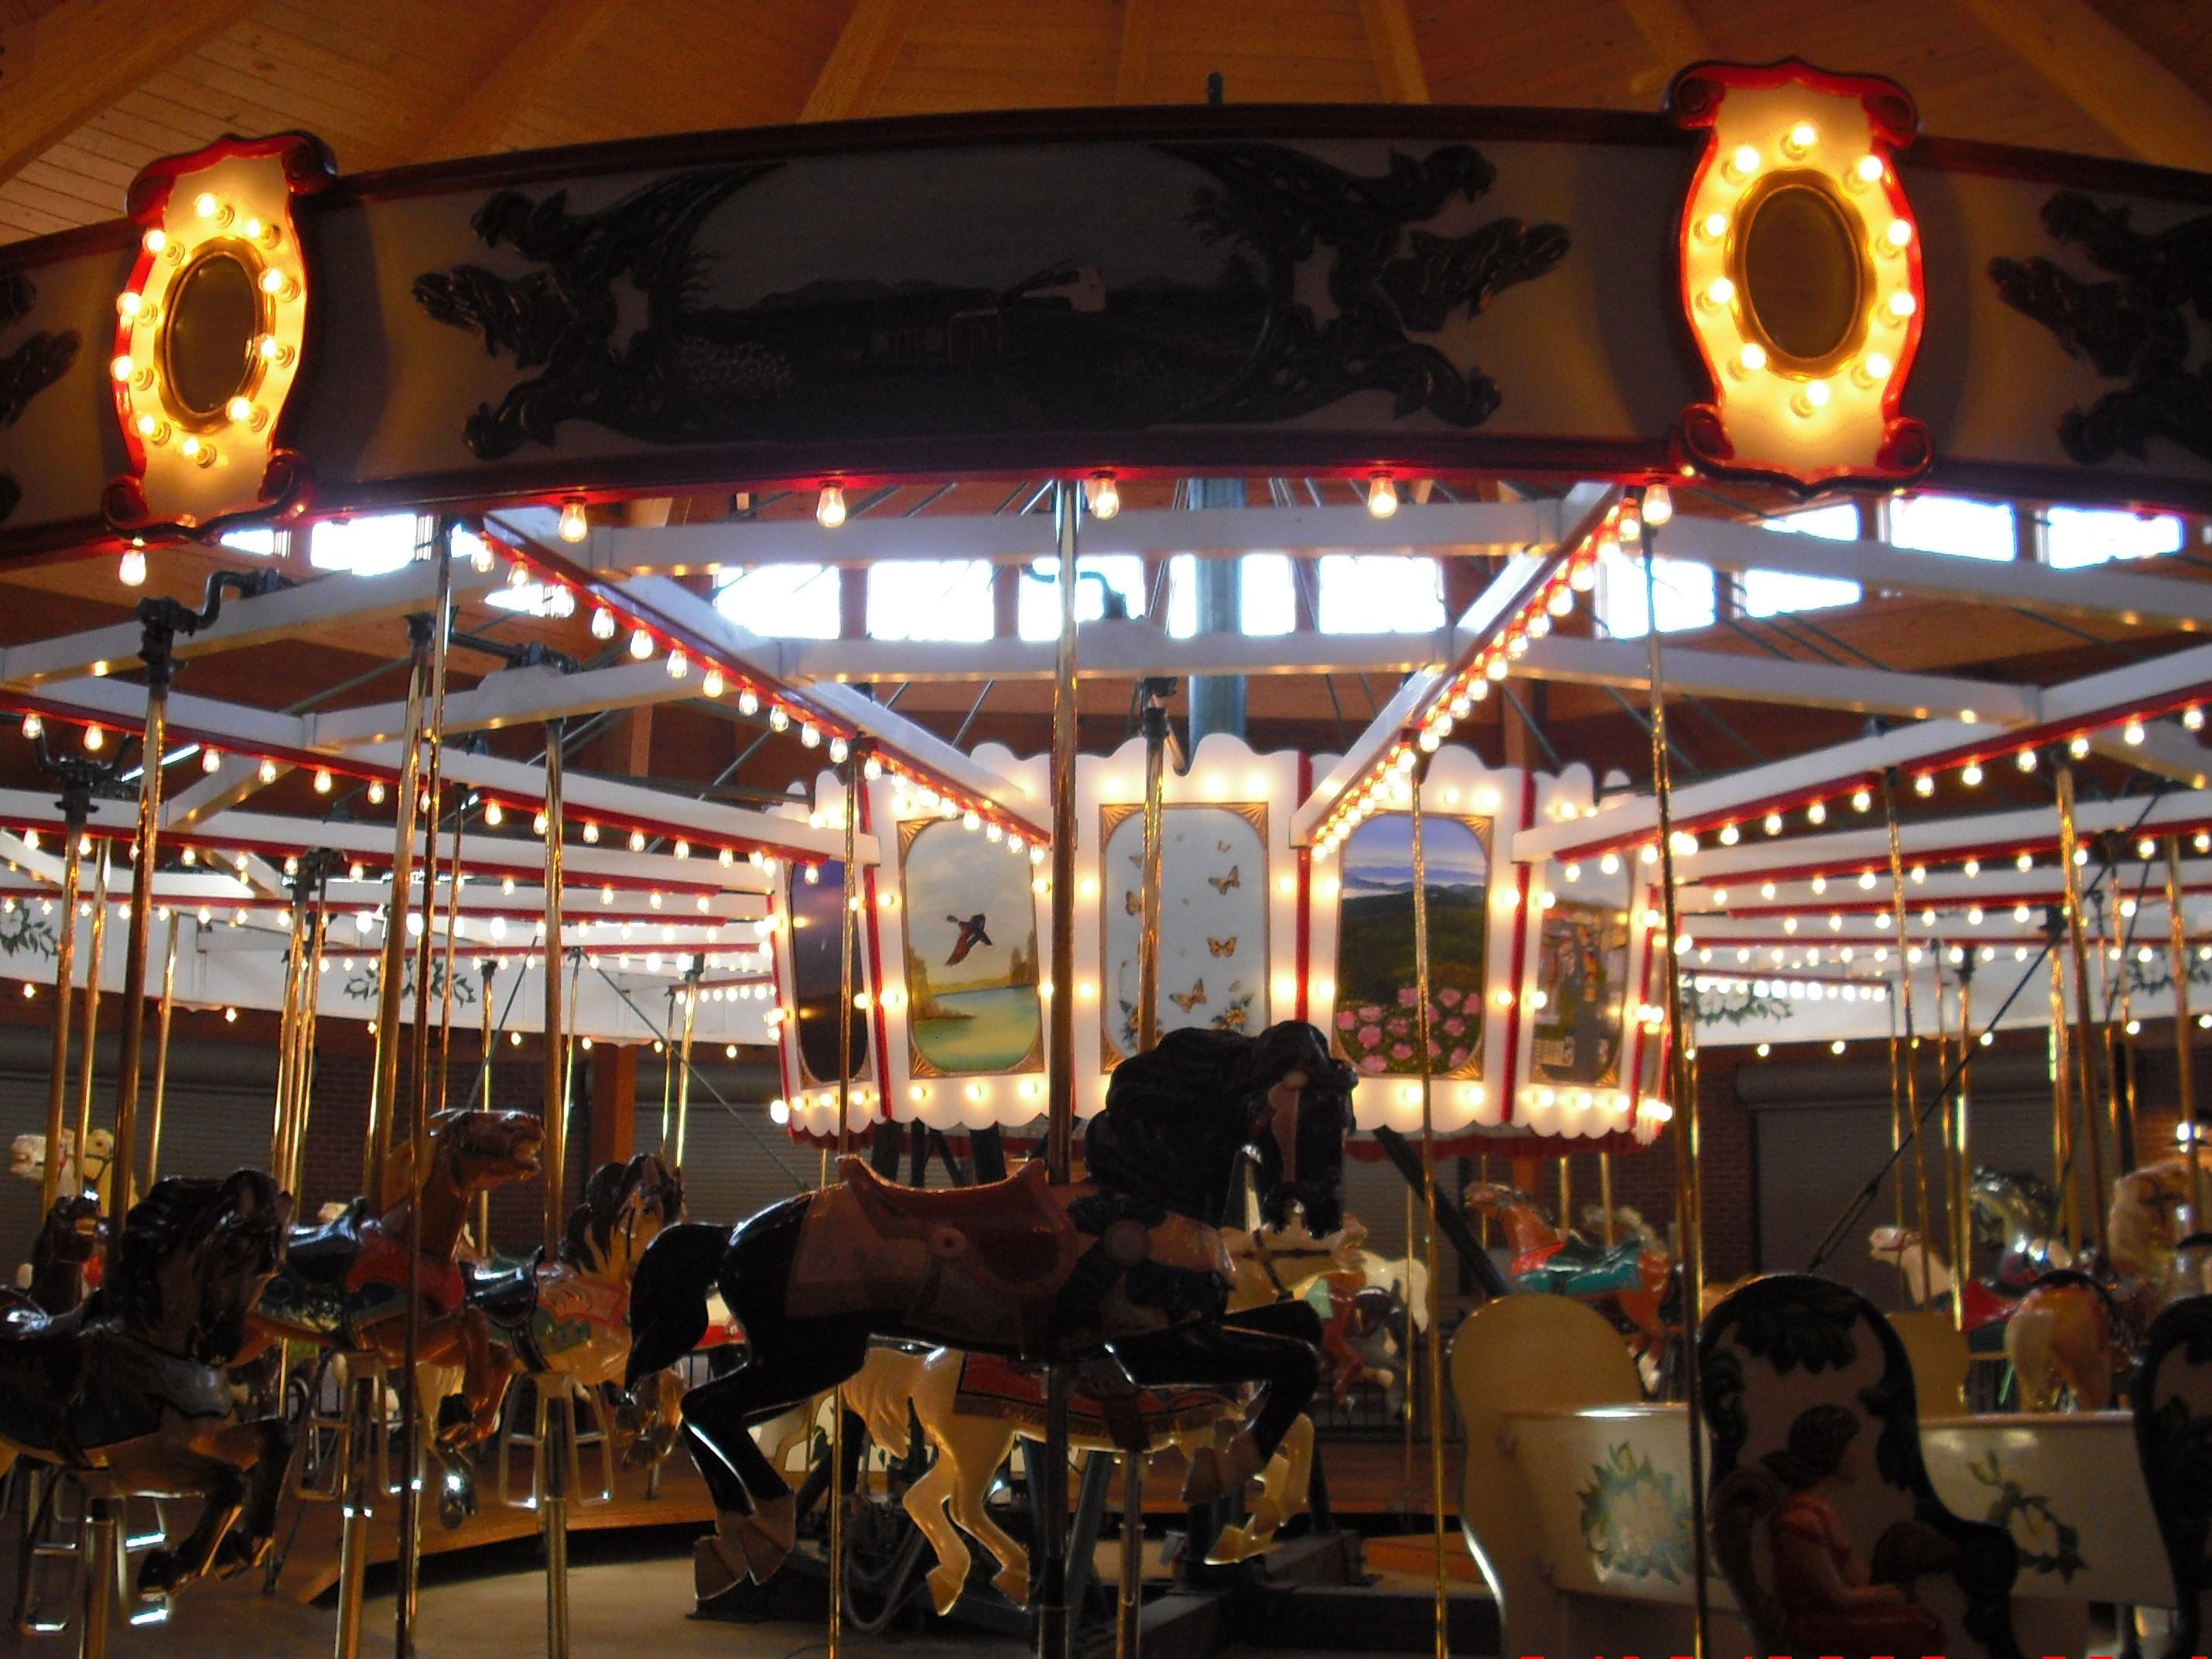 Come ride our Antique!   www.carrouselfriends.org/